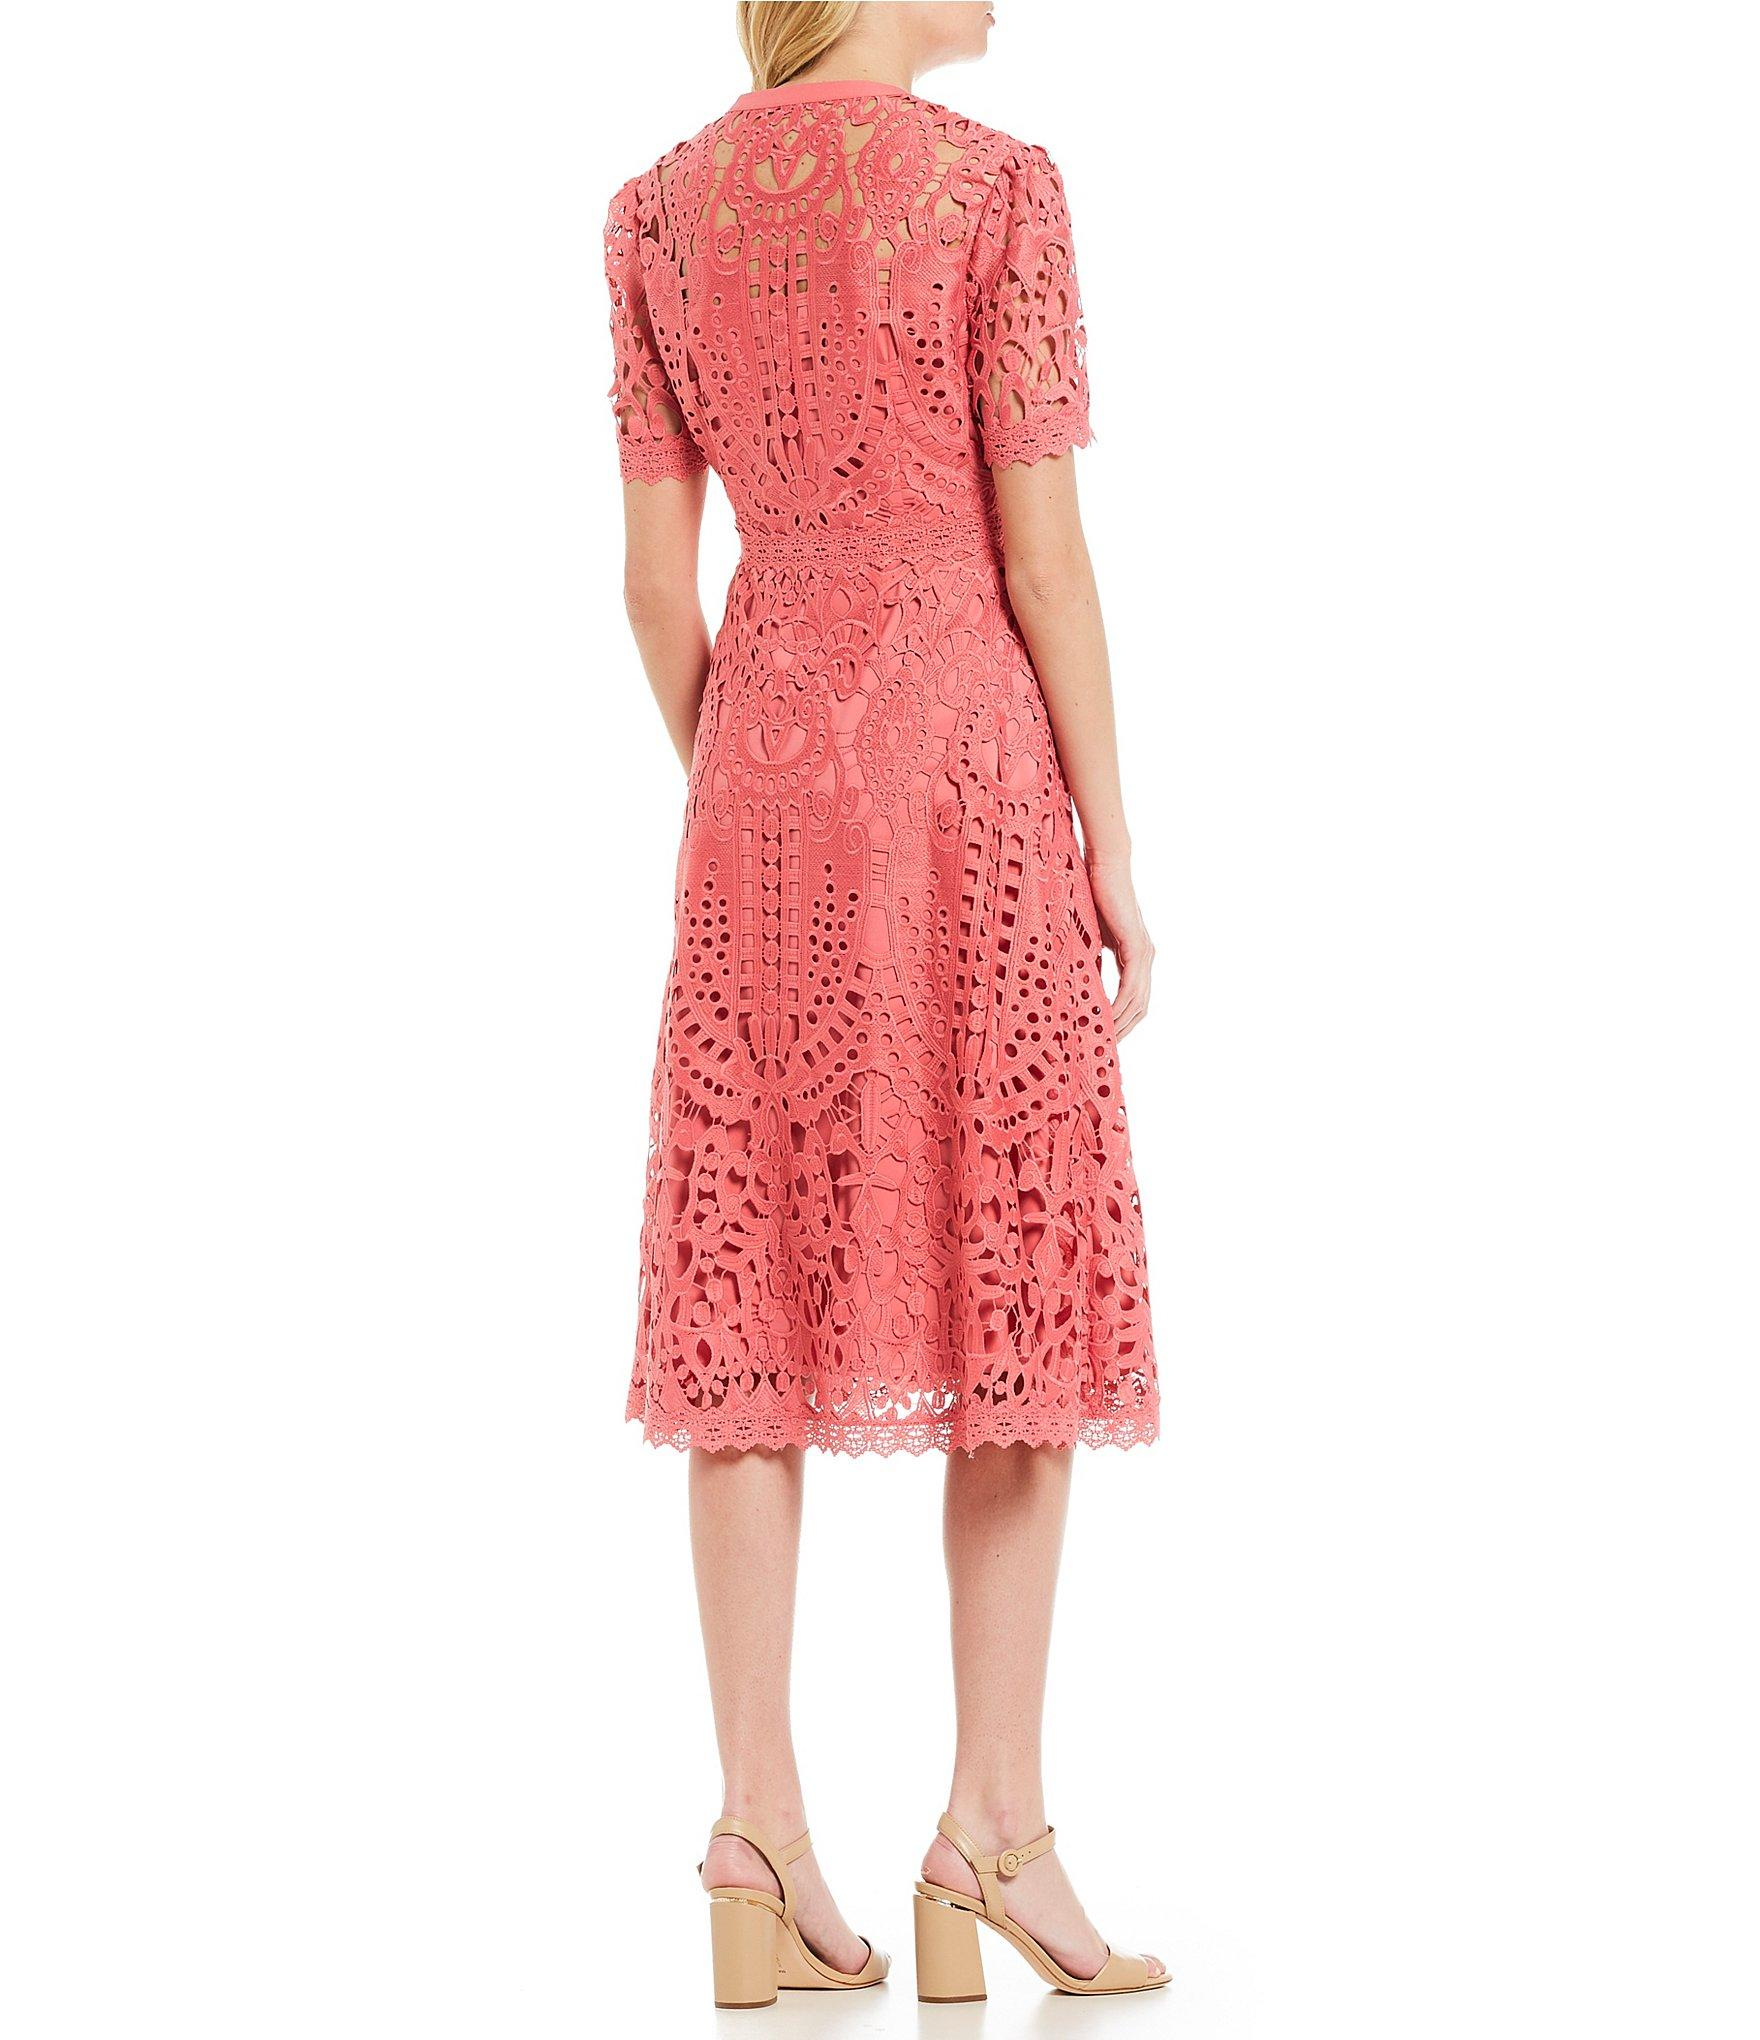 f3659d4a020 Antonio Melani Ada High Neck Lace A-line Midi Dress in Pink - Lyst